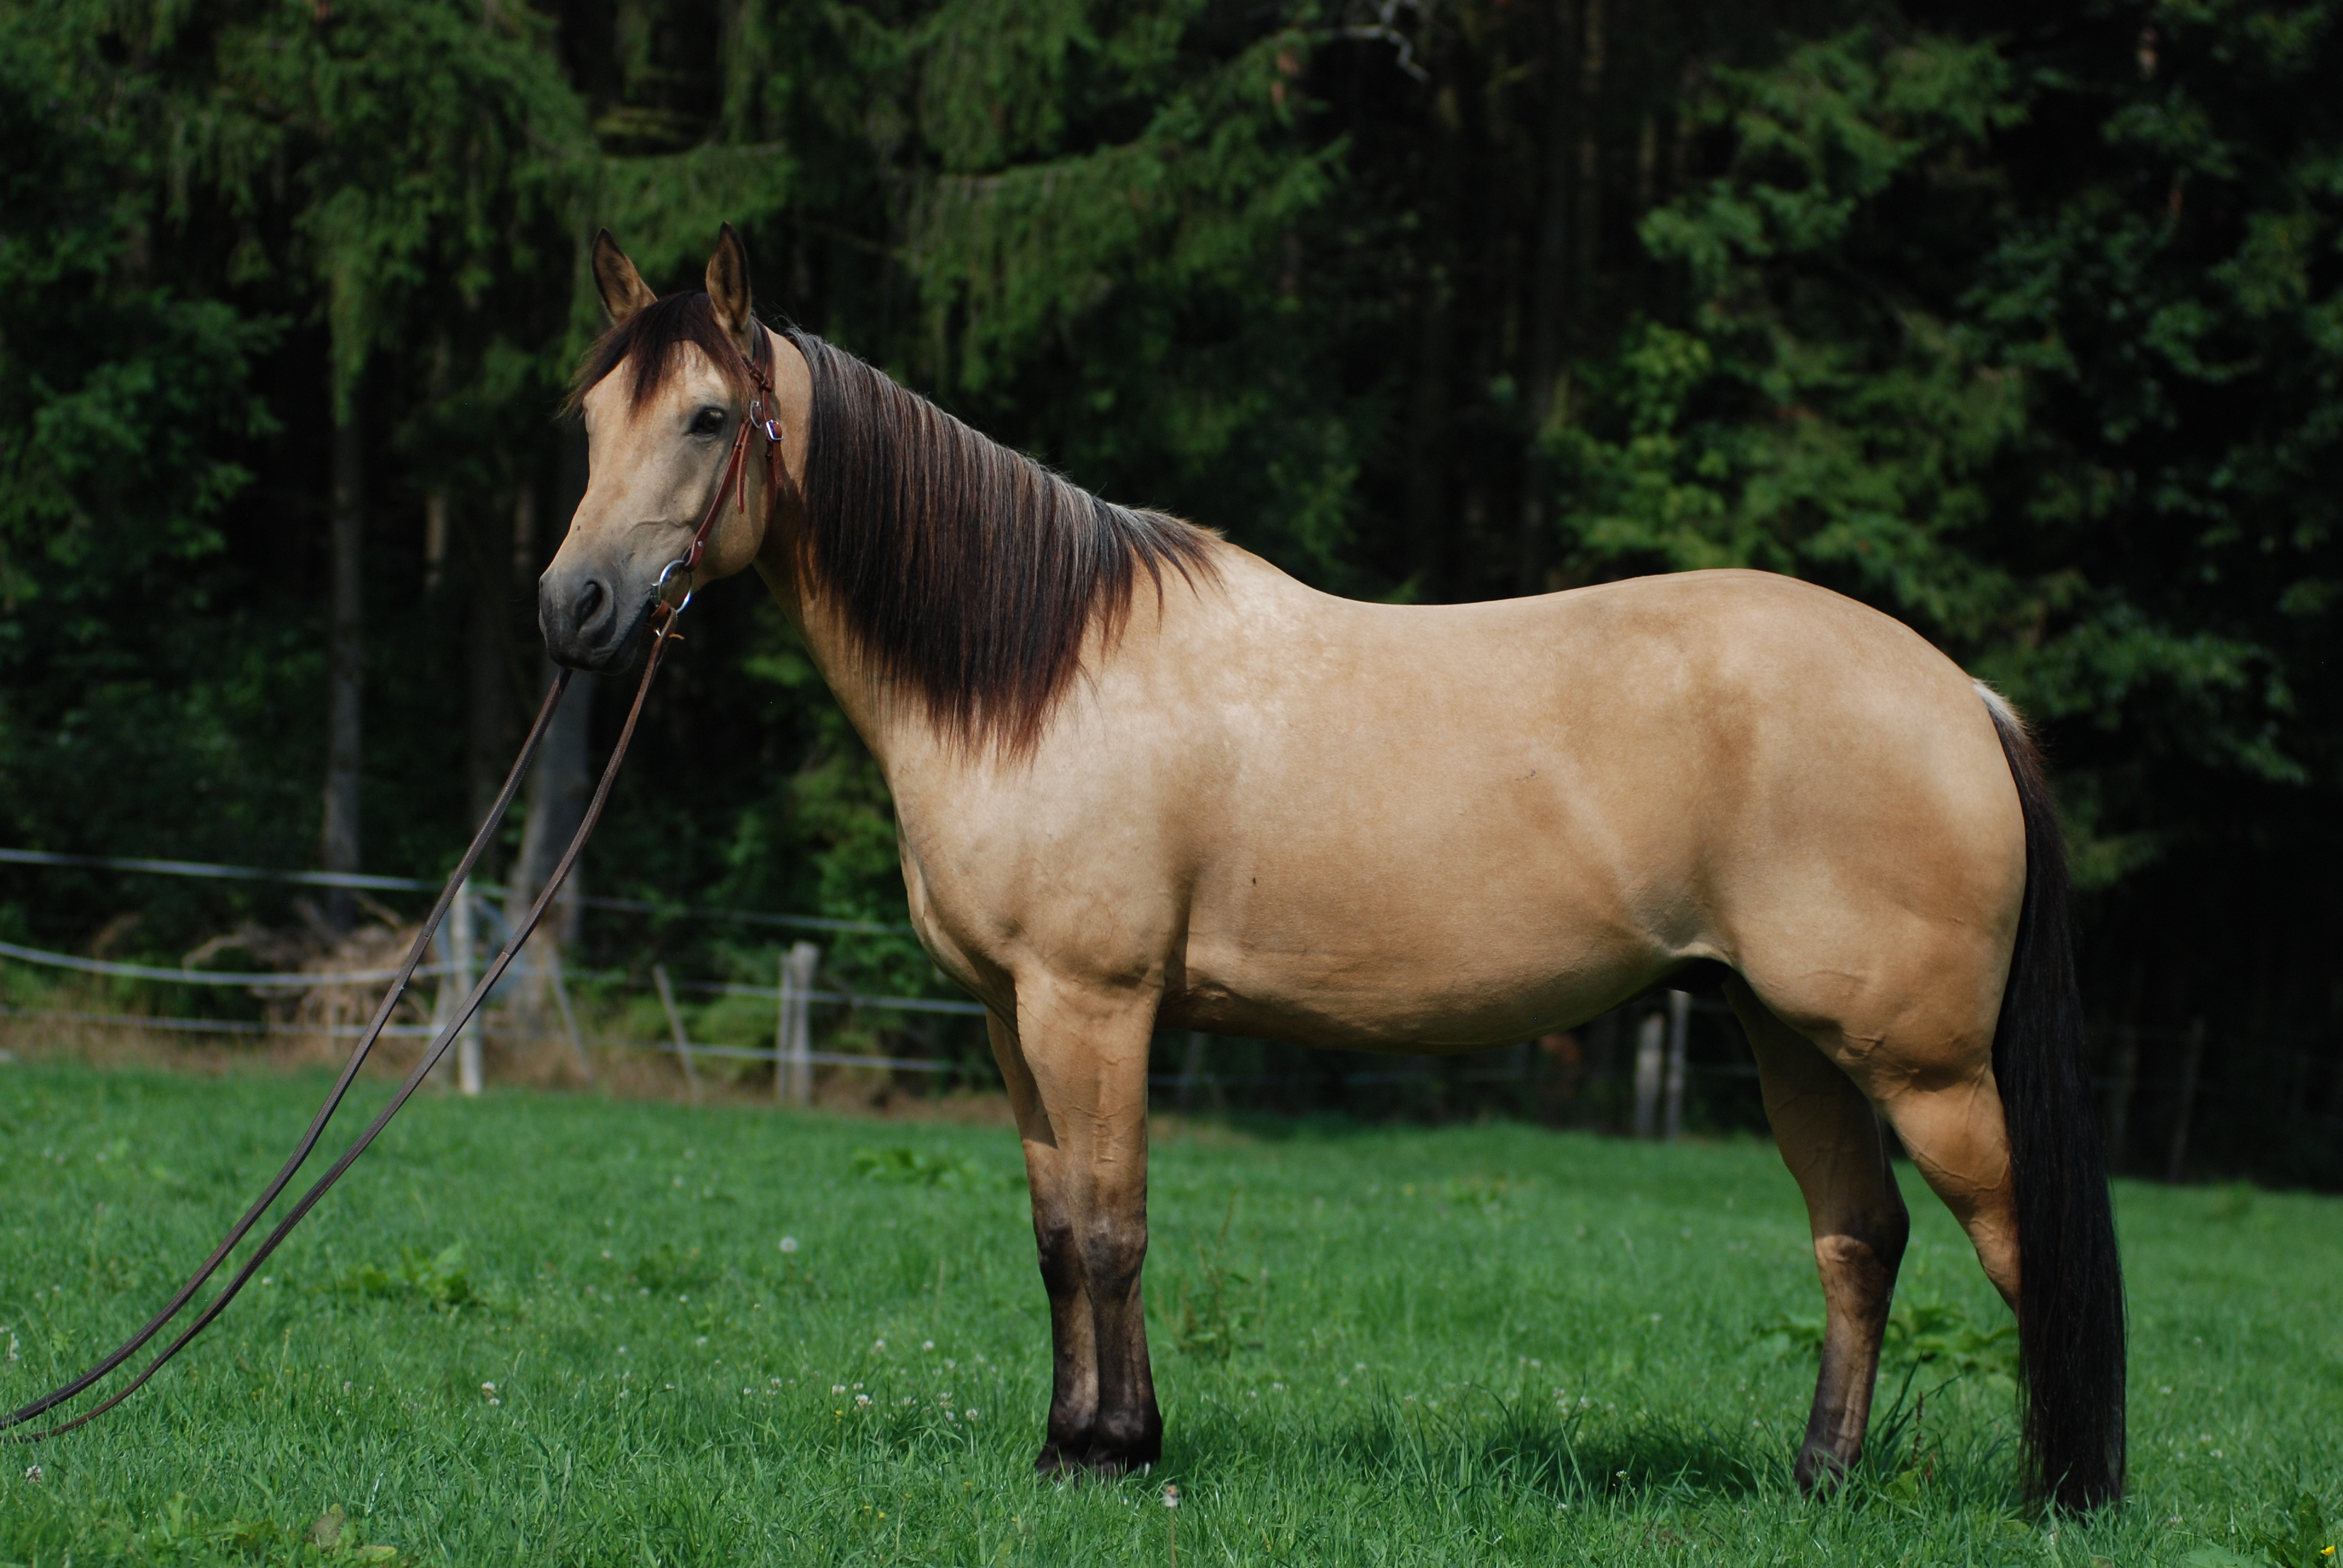 a history of the quarter horse Thus, cow horses were often called steeldusts another horse to influence the texas strain of american quarter horses was shiloh foaled in tennessee in 1844 and brought to texas in 1849, shiloh helped establish many great texas american quarter horse bloodlines.